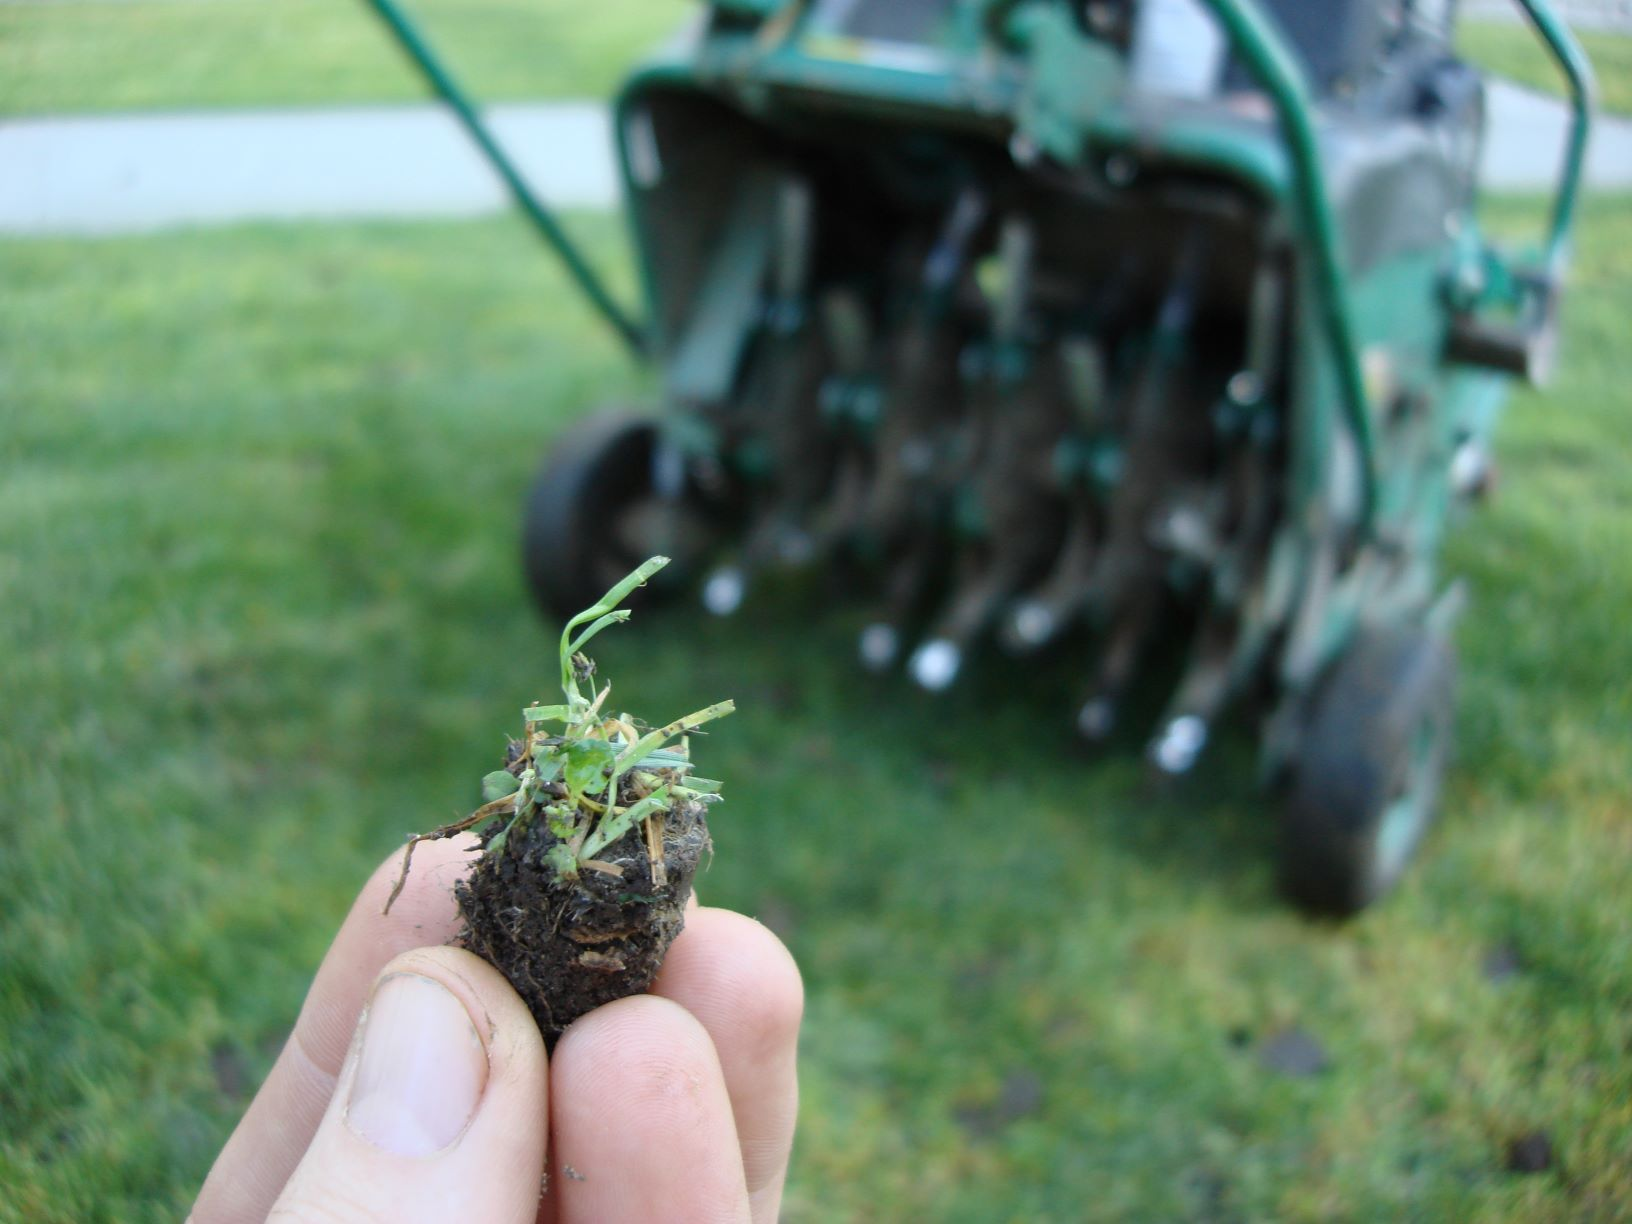 Lawn Aeration: Why, When and How